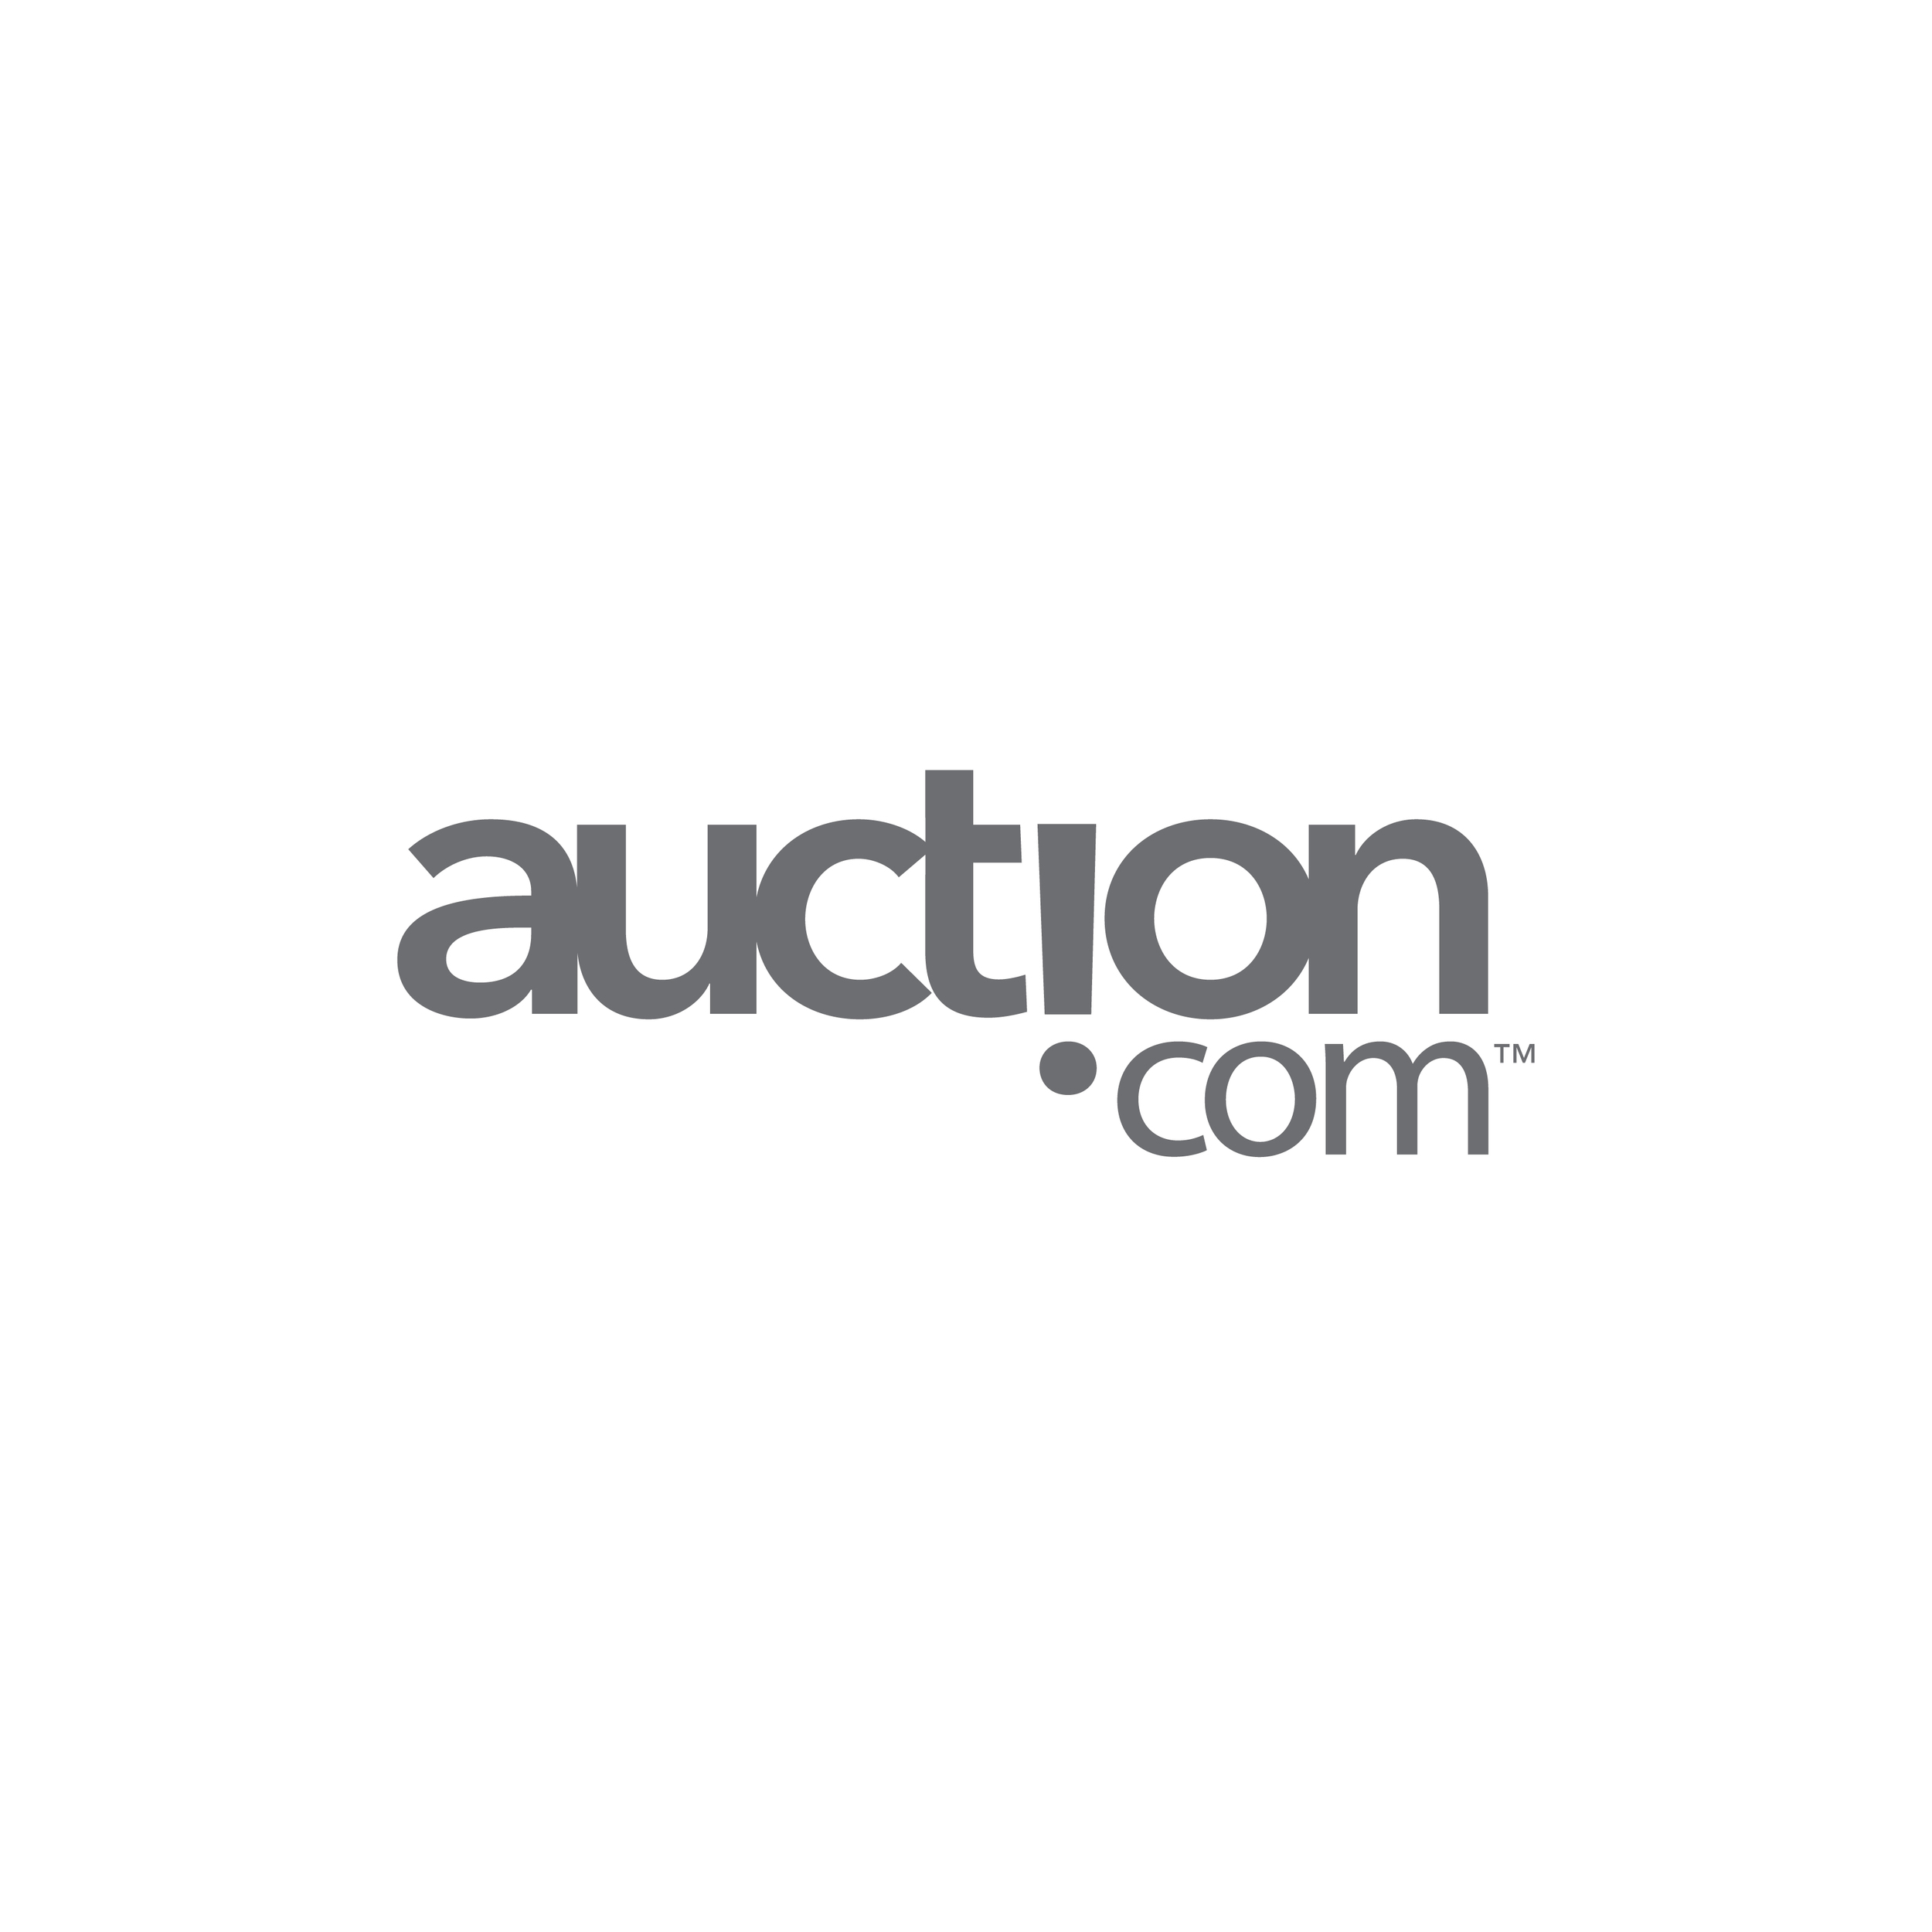 Logo-03-Auction.jpg